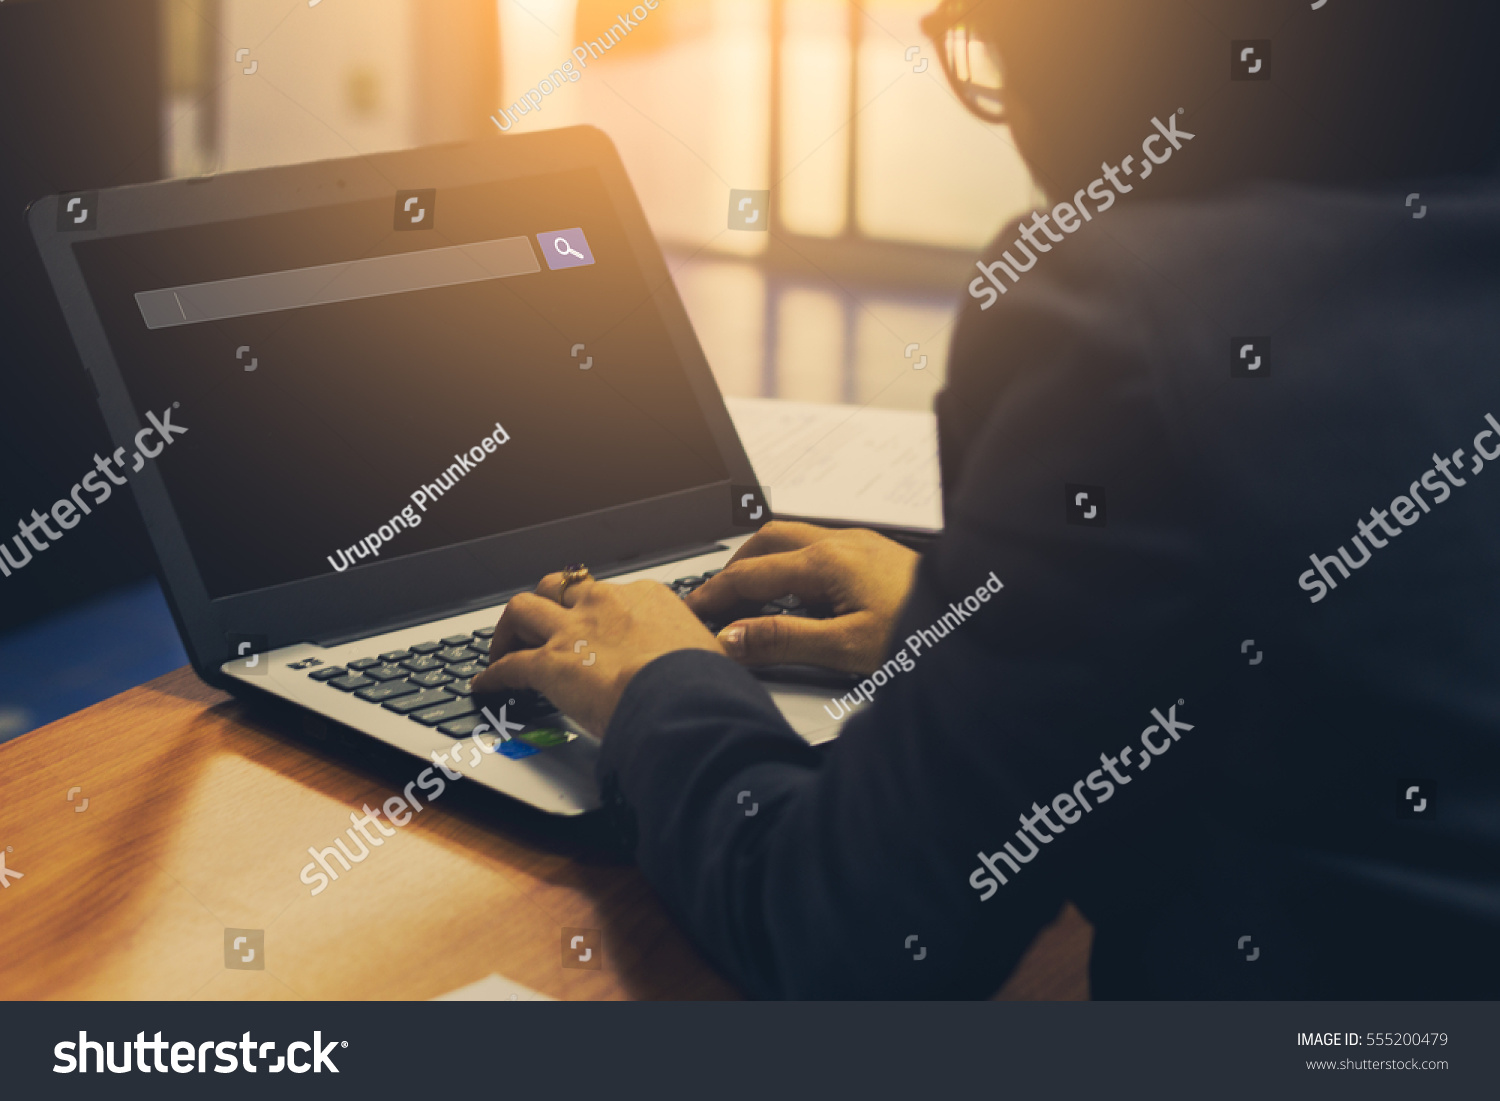 business people search web and technology concept of using internet browser on laptop computer on table  #555200479